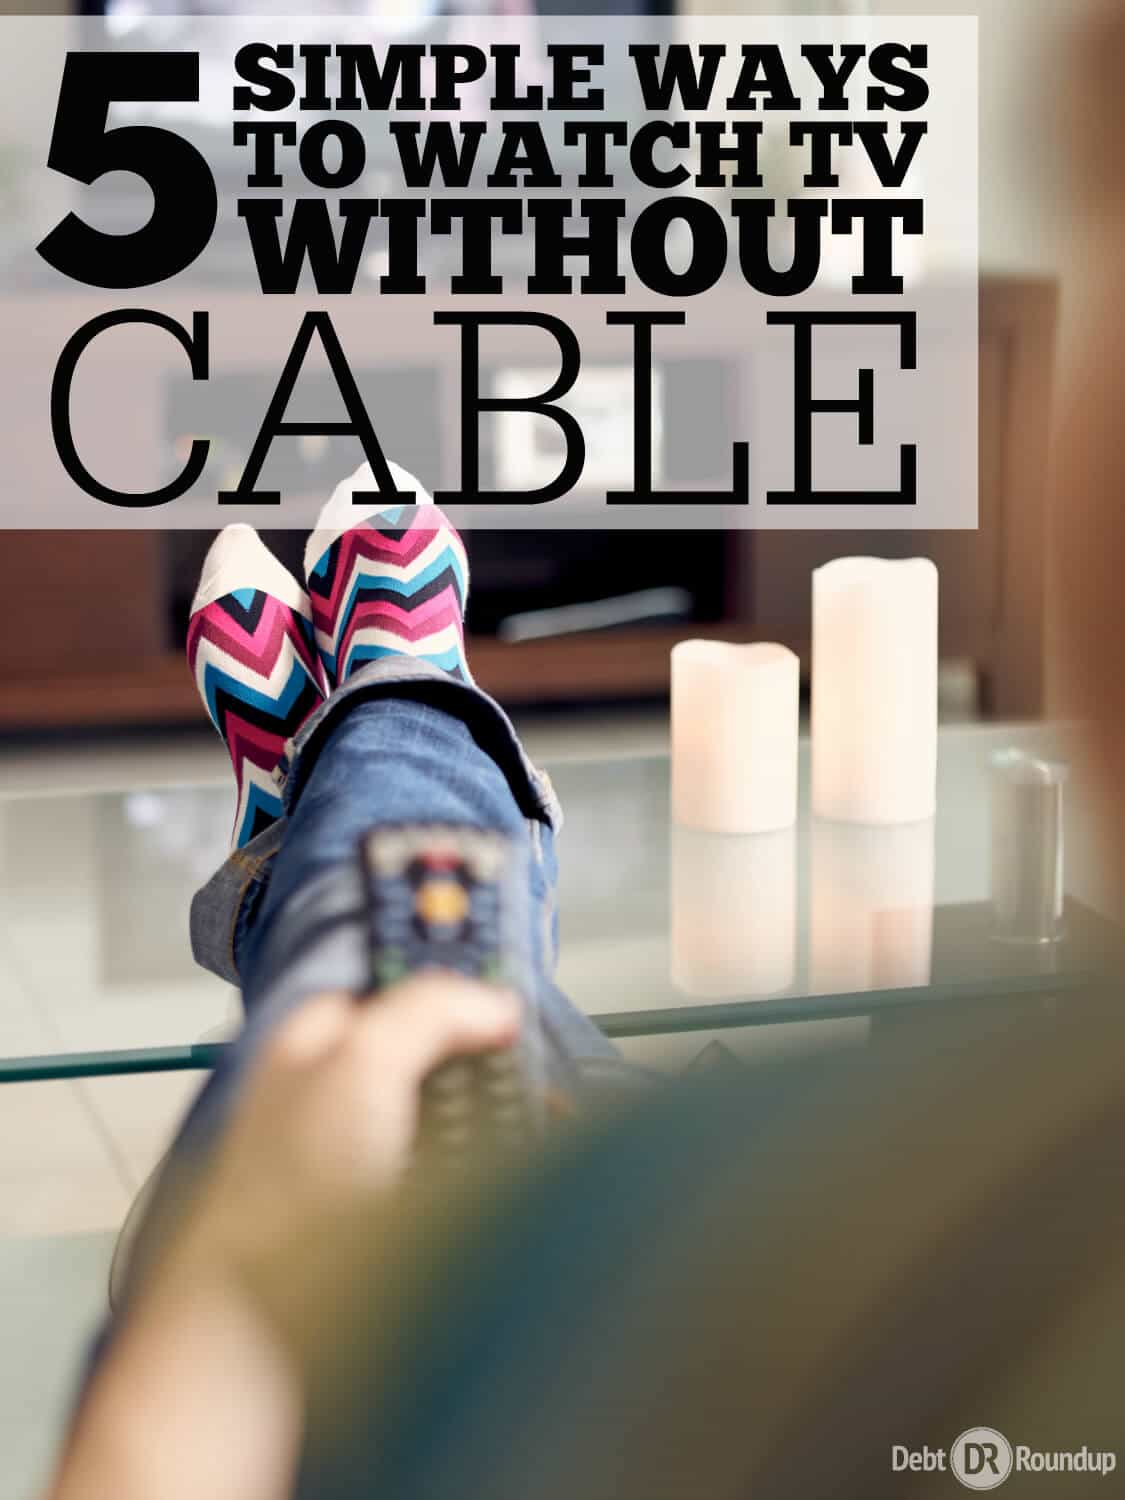 5 Simple Ways to watch TV without Cable